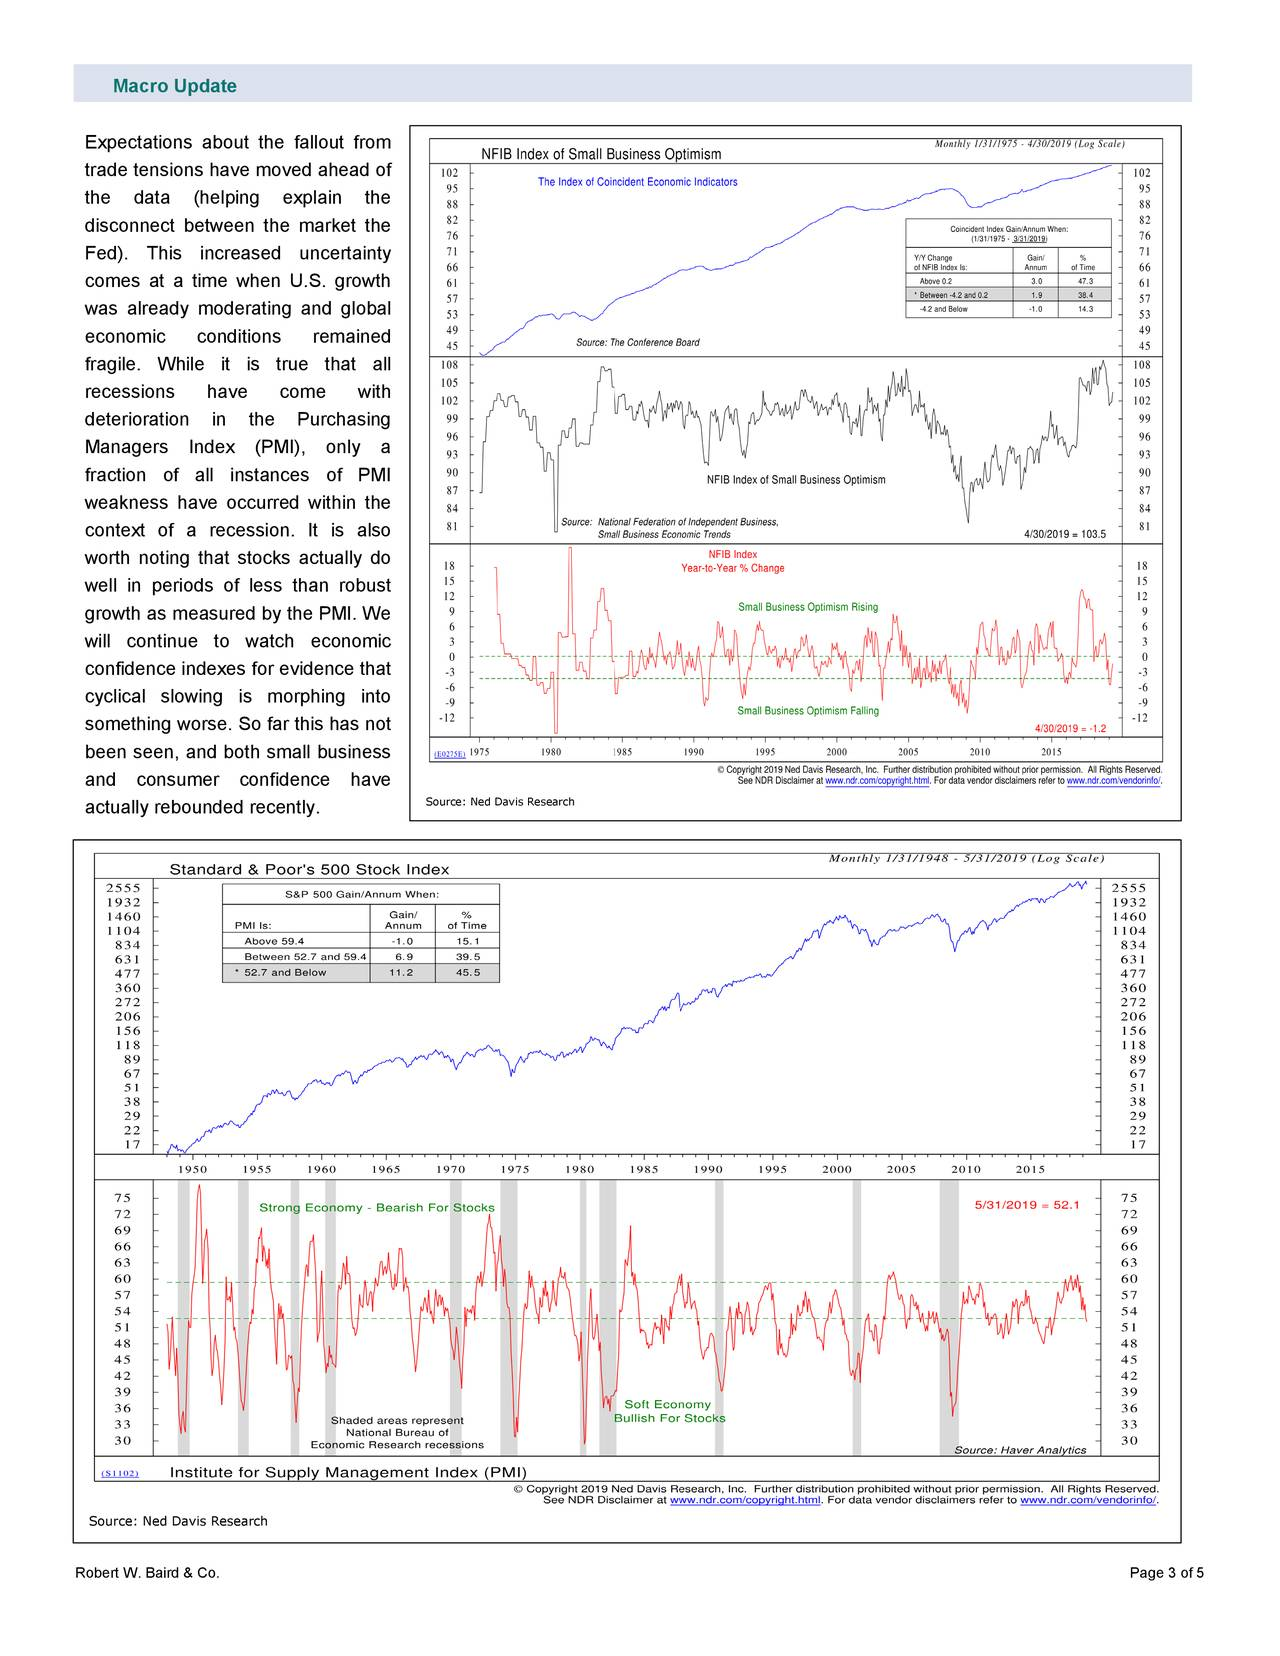 Expectations about the fallout from trade tensions have moved ahead of the data (helping explain the disconnect between the market the Fed). This increased uncertainty comes at a time when U.S. growth was already moderating and global economic conditions remained fragile. While it is true that all recessions have come with deterioration in the Purchasing Managers Inde x (PMI) , only a fraction of all instances of PMI weakness have occurred within the context of a recession. It is also worth noting that stocks actually do well in periods of less than robust growth as measured by the PMI. We will continue to watch economic confidence indexes for evidence that cyclical slowing is morphing into something worse. So far this has not been seen, and both small business and consumer confidence have Source: Ned Davis Research actually rebounded recently. Source: Ned Davis Research Robert W. Baird & Co. Page 3 of 5